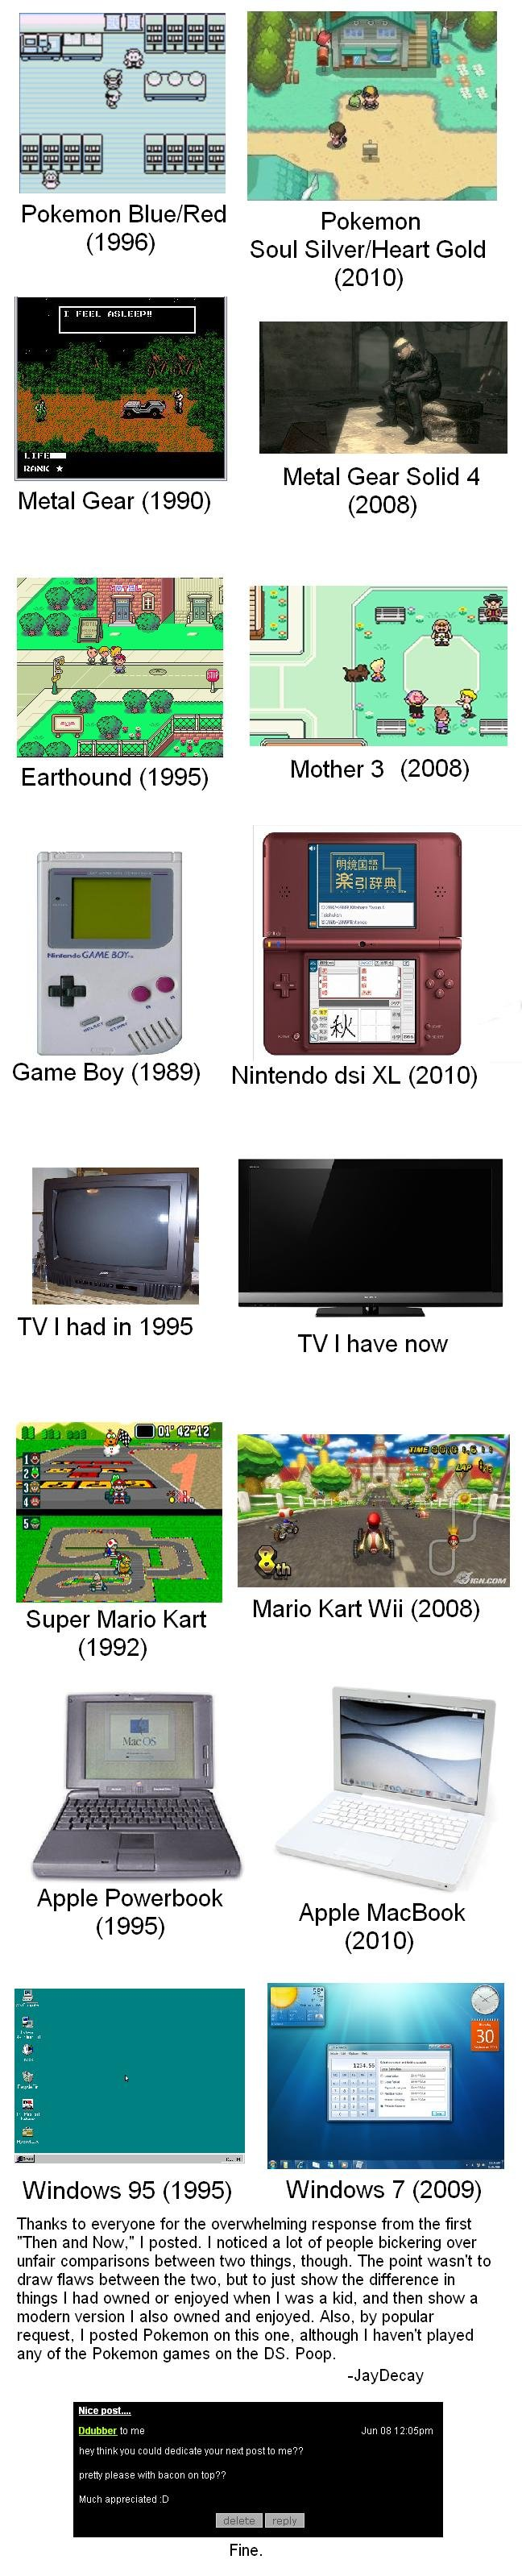 Then and Now 2. More stuff to look at from the past that is still around!. Pokemon Blue/ Red 1996) Soul Silver/ Heart Gold 2010) Metal Gear Solid 4 2008) TV I h